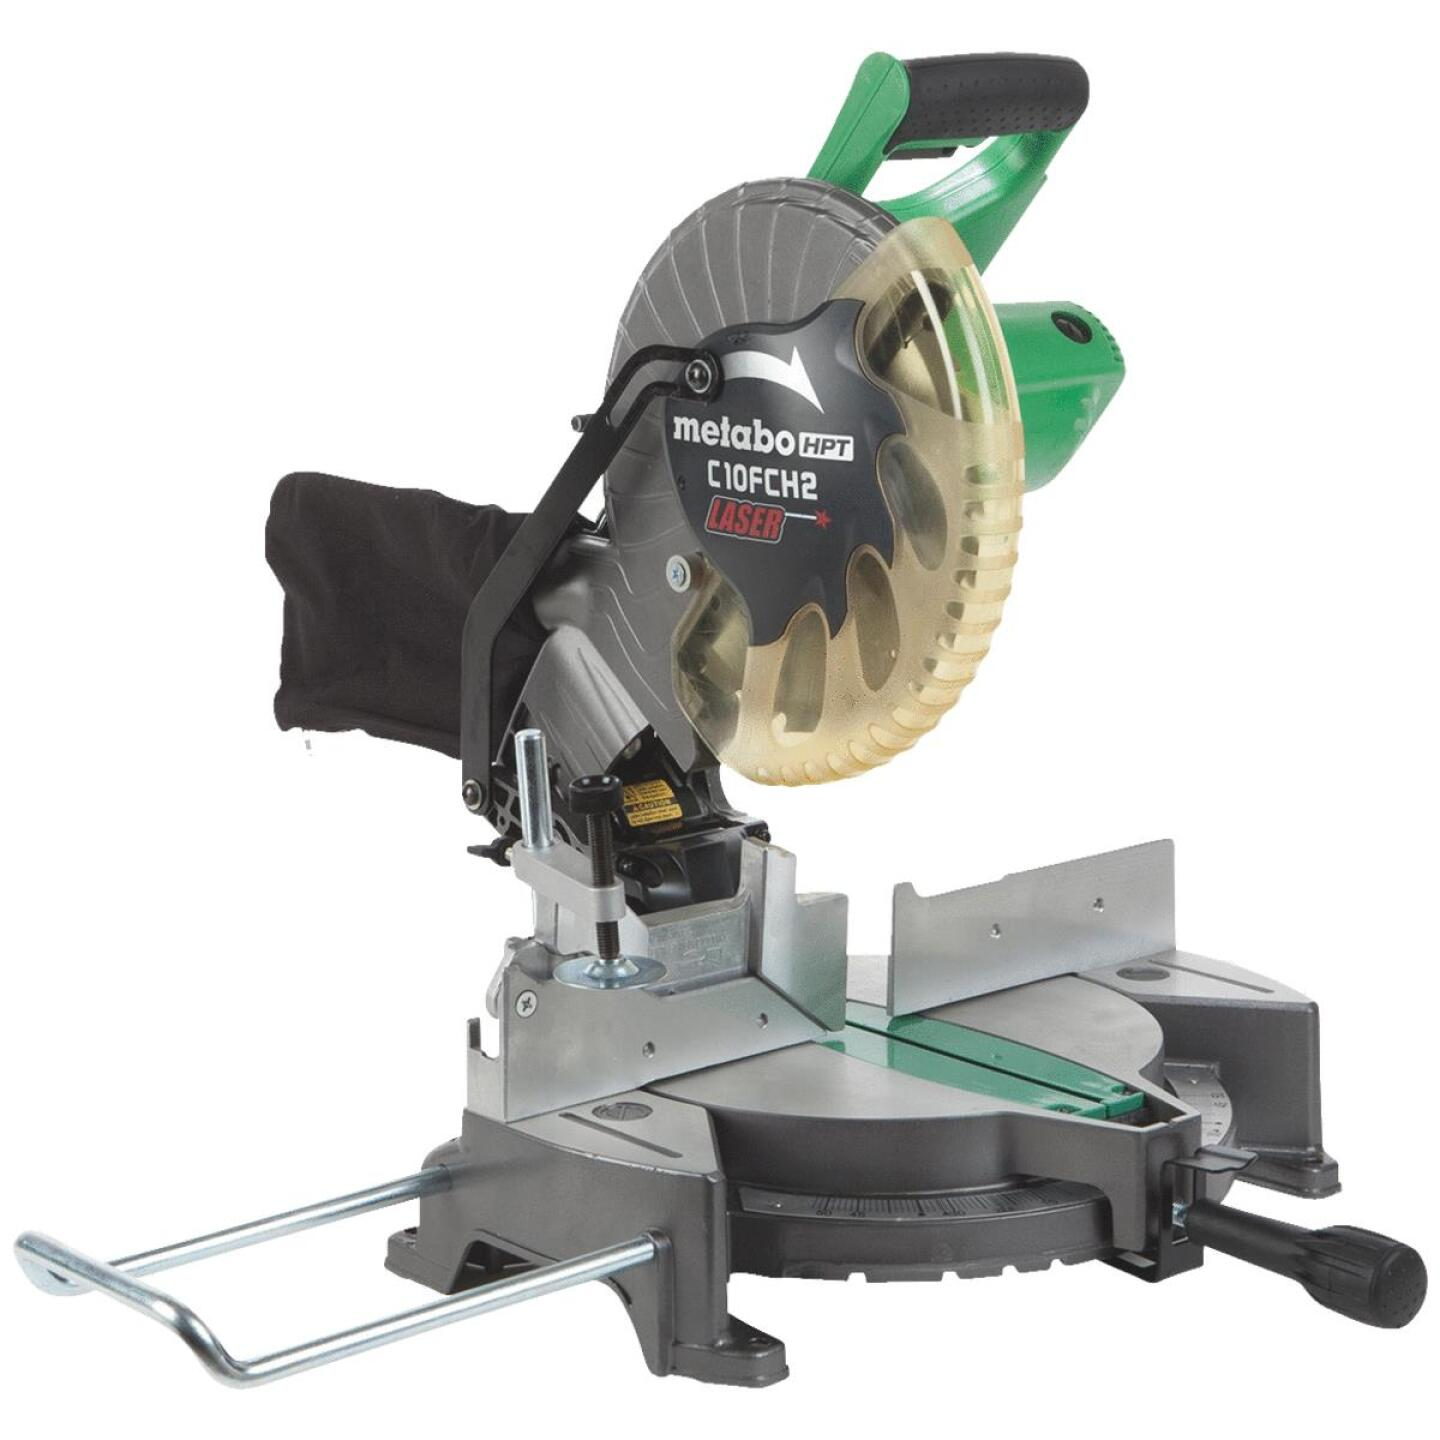 Metabo 10 In. 15-Amp Compound Miter Saw with Laser Image 1